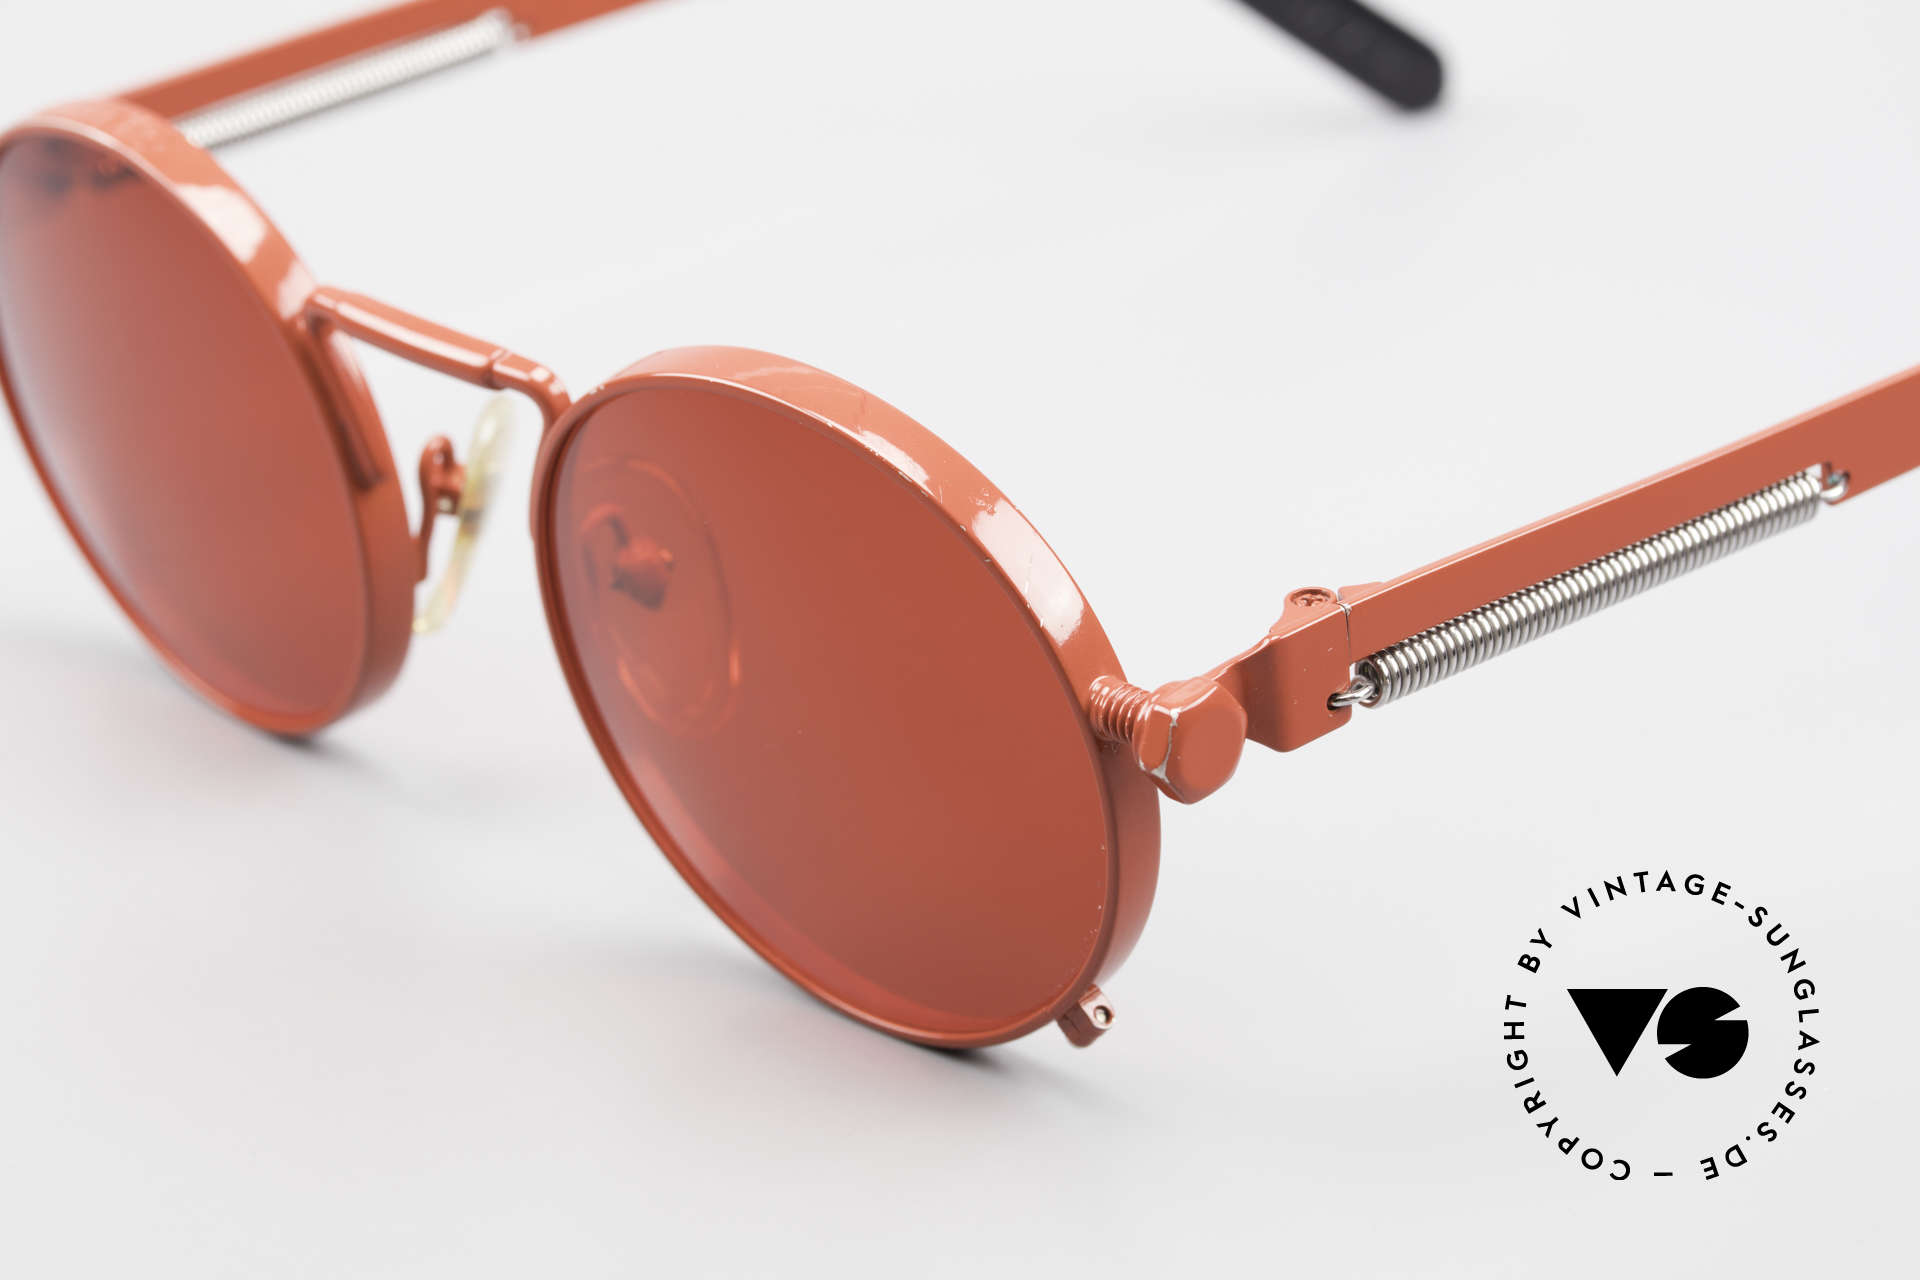 Jean Paul Gaultier 56-8171 Customized Red Edition, the most wanted Gaultier vintage sunglasses, worldwide, Made for Men and Women